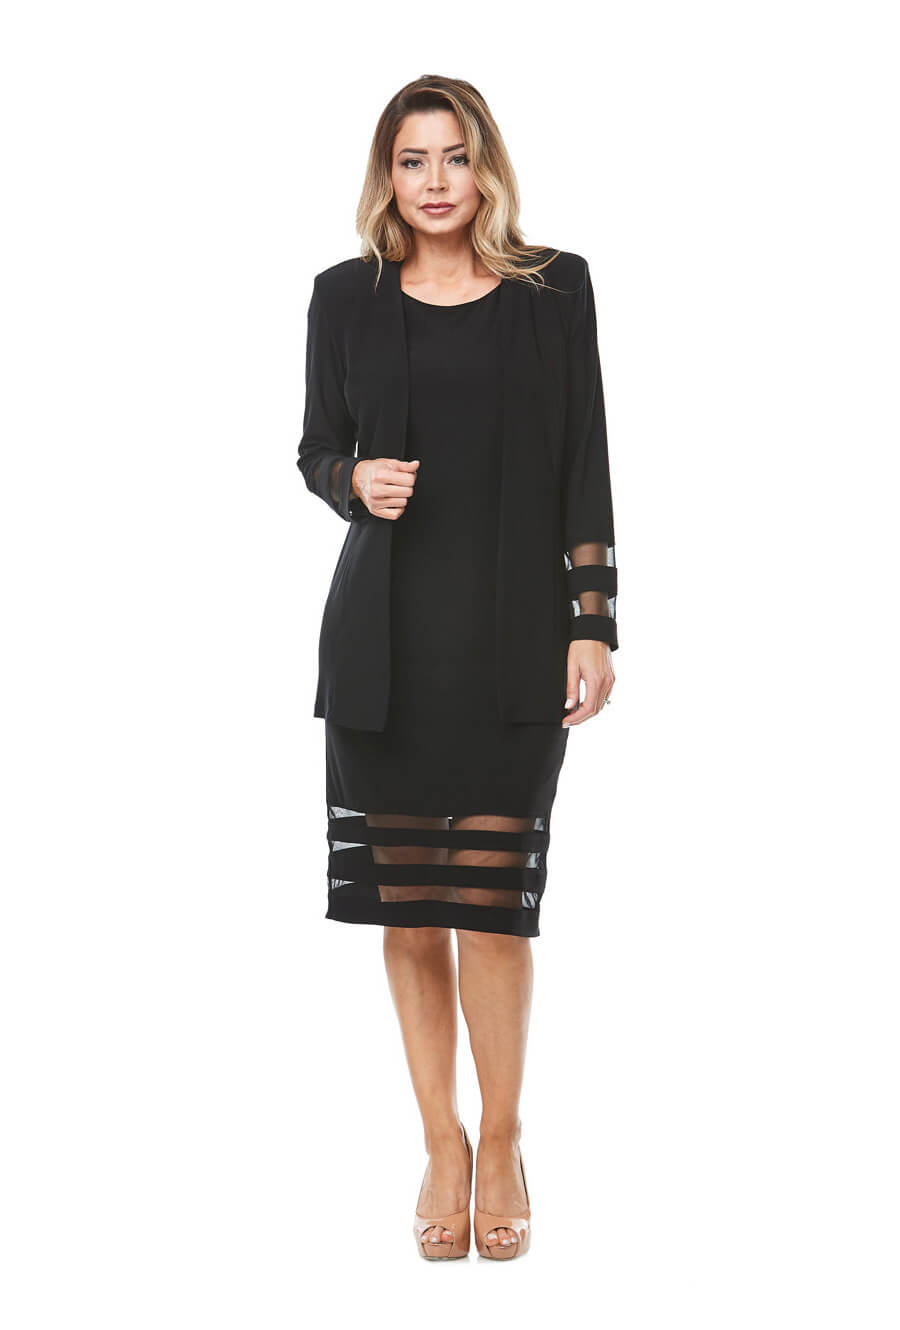 Stretch jersey cocktail dress with sheer panel detail & matching tailored jacket